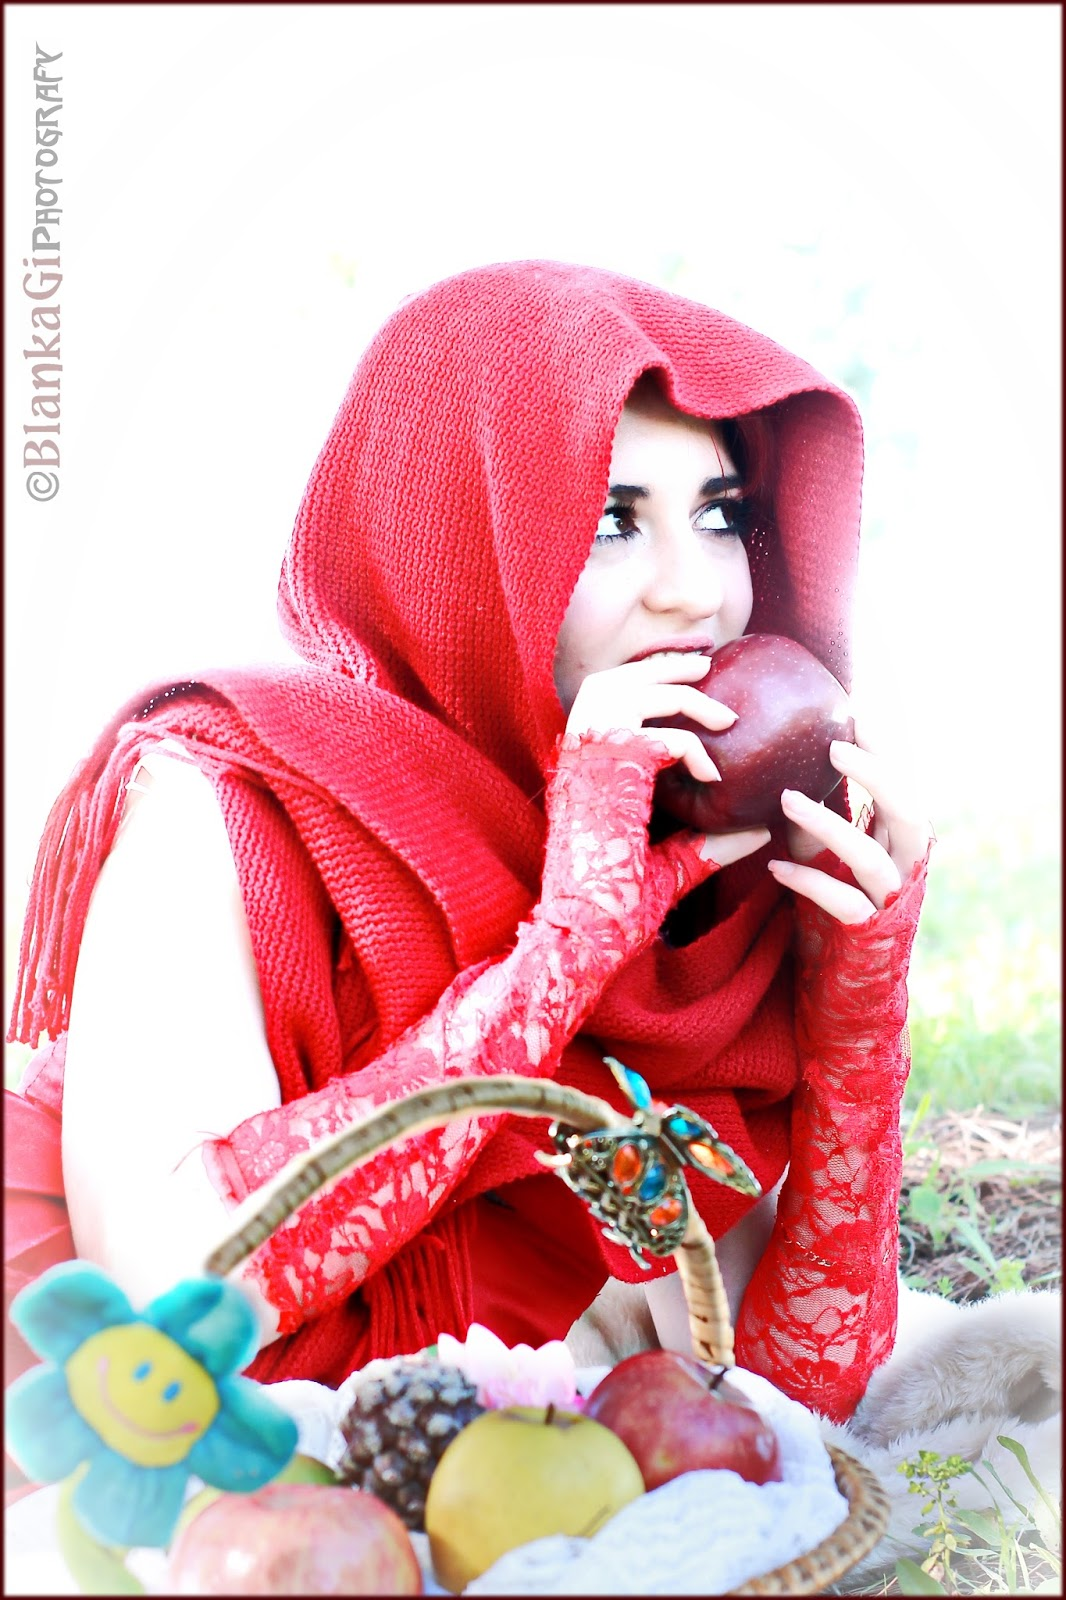 BlanKaGi Photografy: Little Red Riding Hood